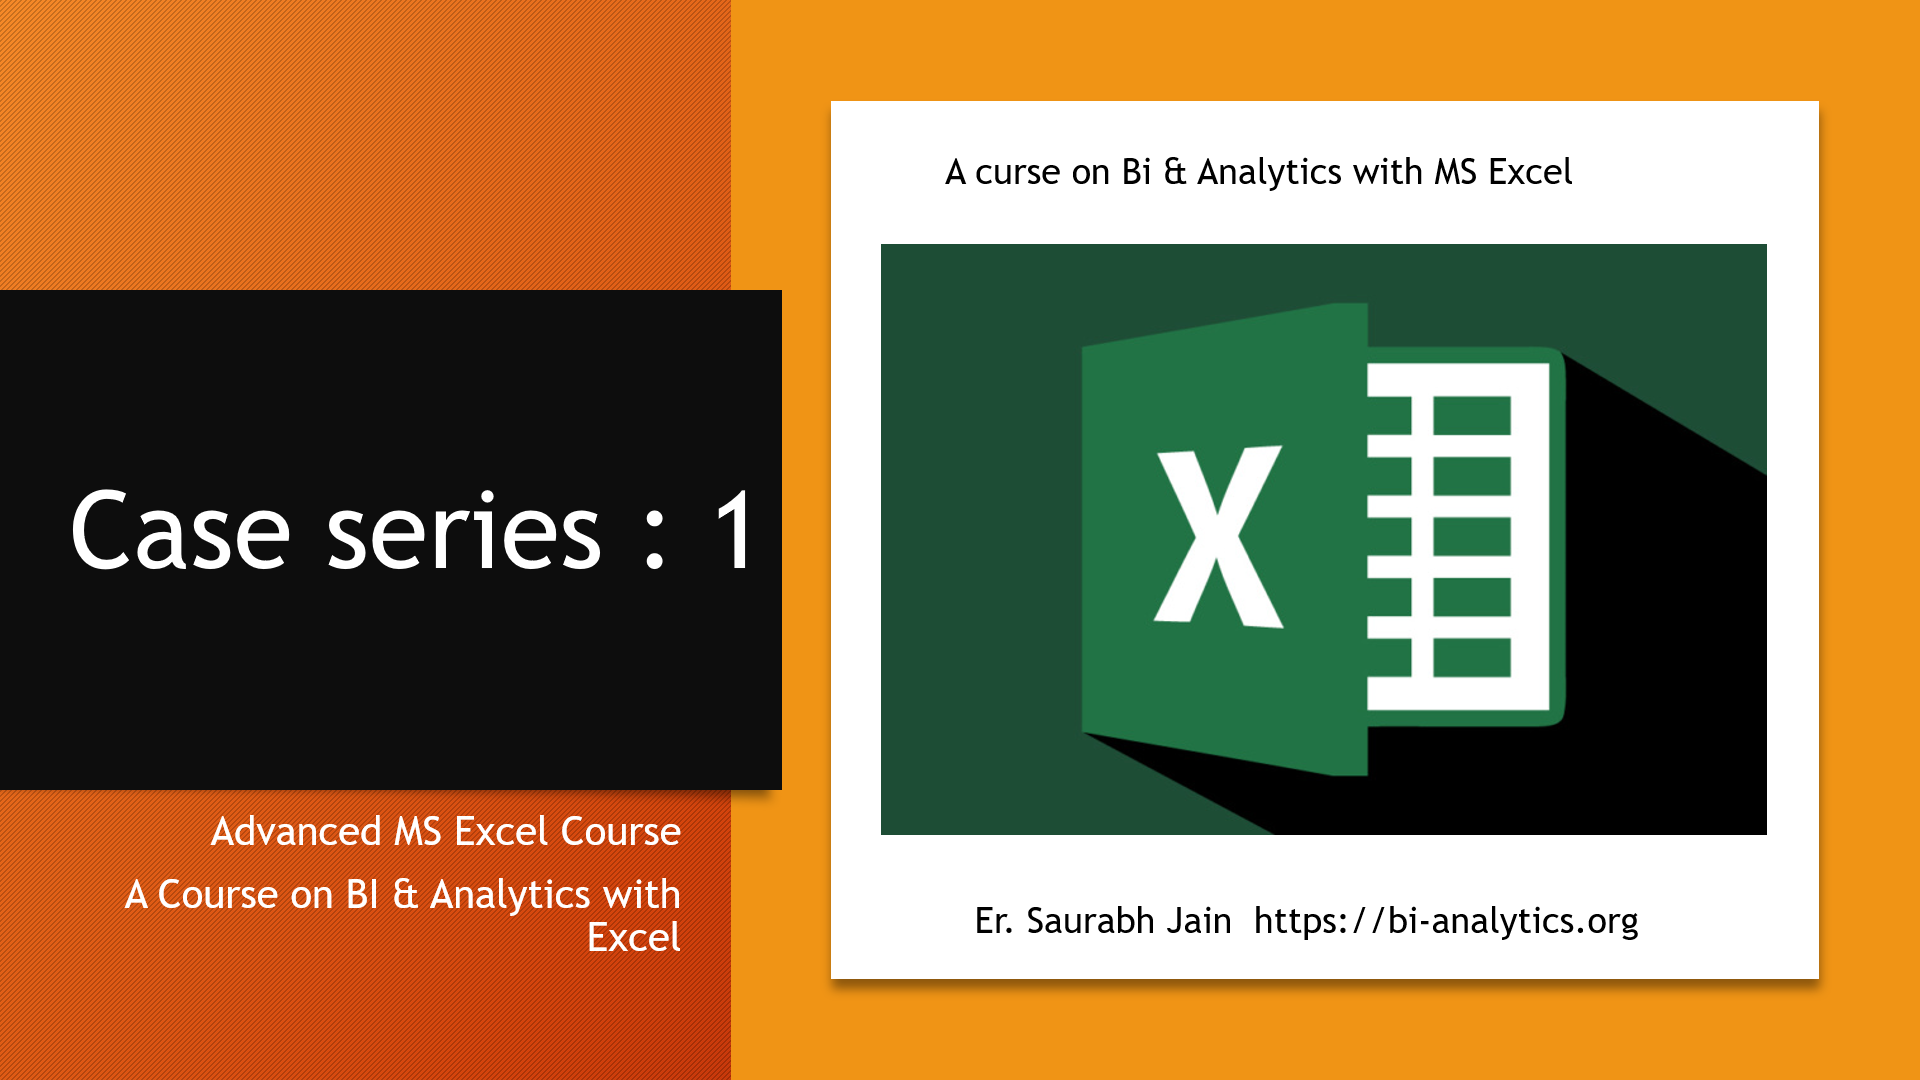 case series 1 :  Applying Formulas Free Advanced MS EXCEL Course